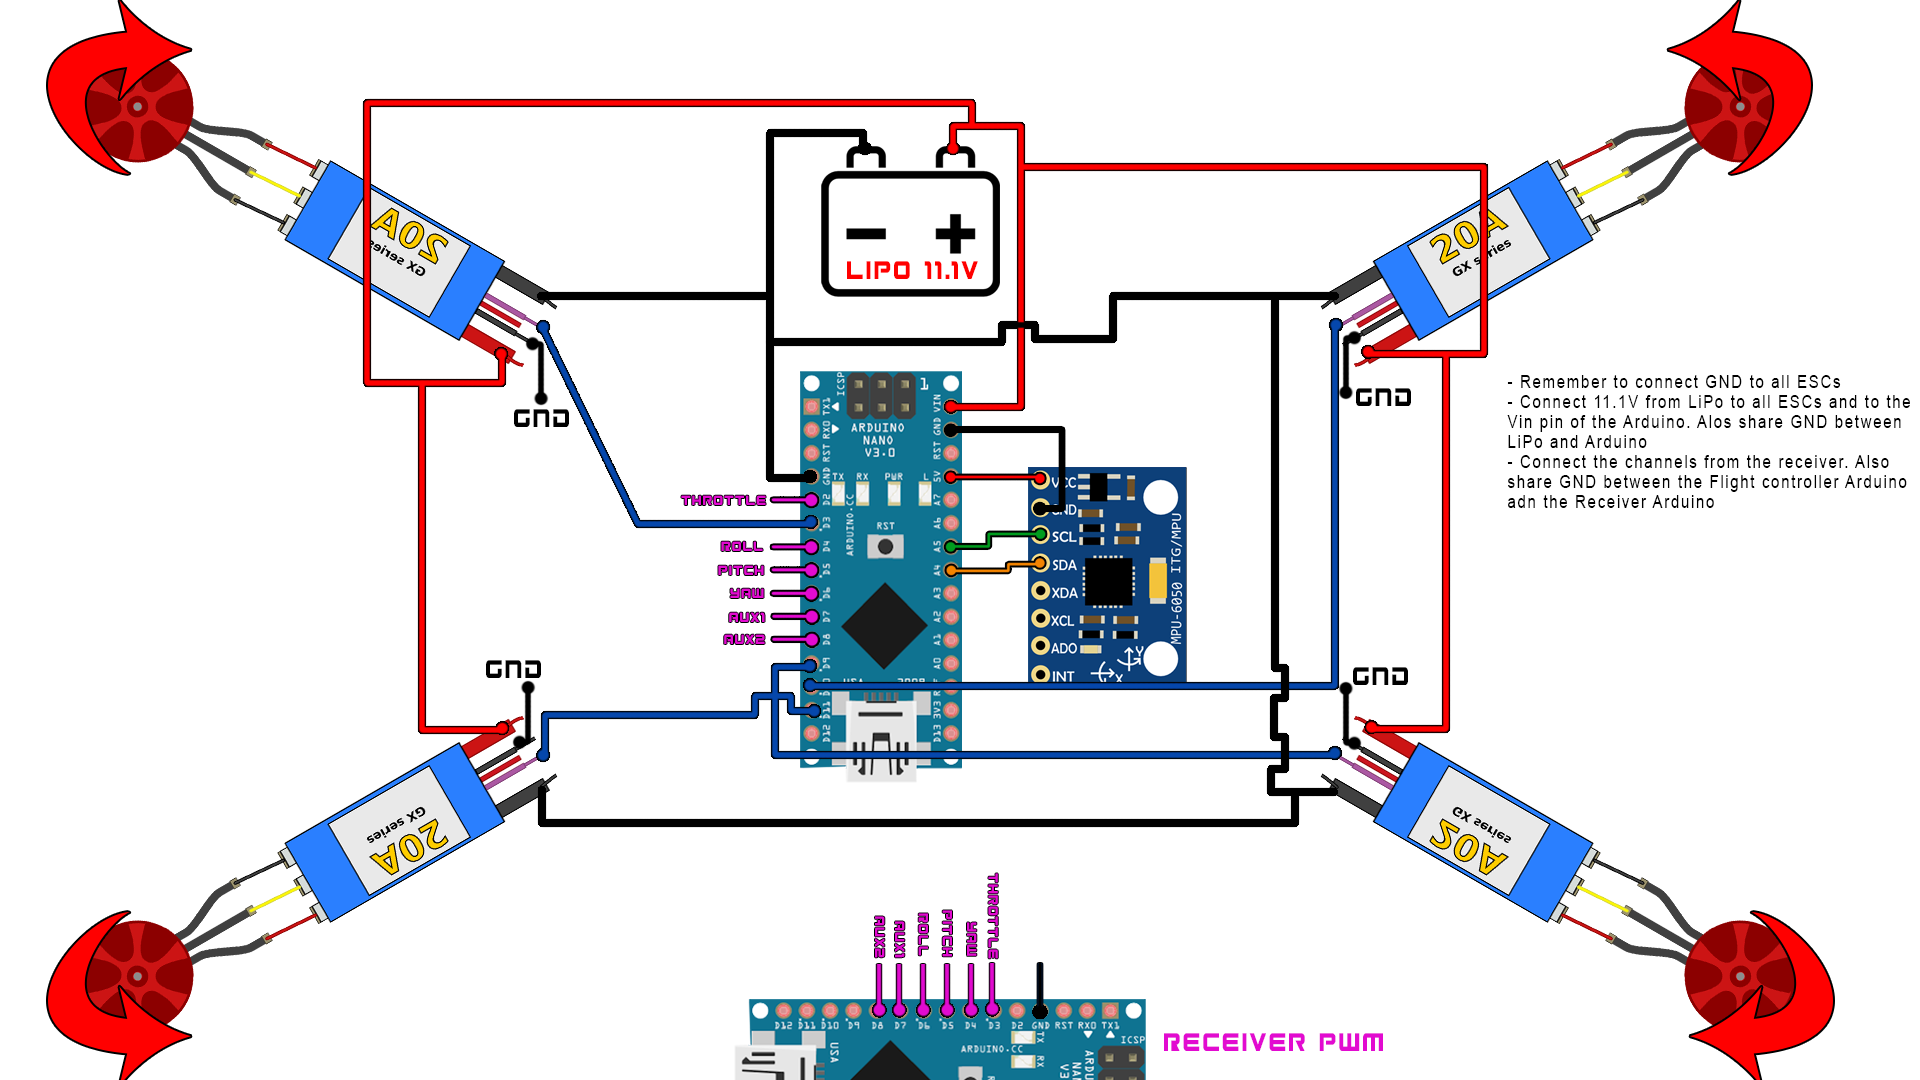 full_flight_controller_small  Axis Joystick Wiring Diagram on pole contactor, channel car, bulb ballast, light fluorescent lamp ballast, speed single phase motor, three-way light switch, pole thermostat, channel car amplifier, lamp ballast, way switches,